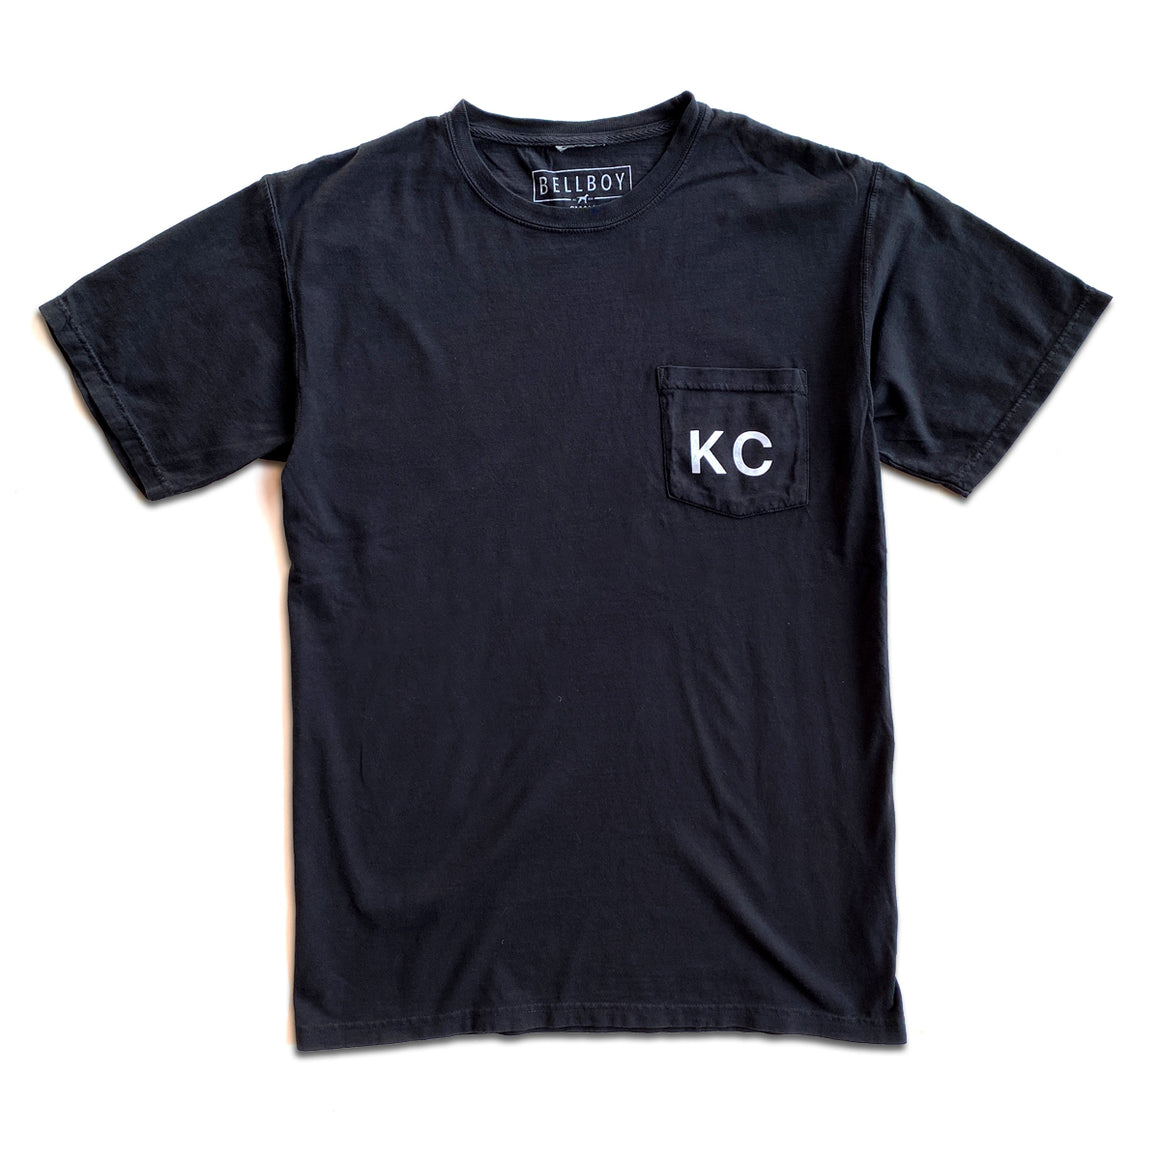 BELLBOY | KC POCKET T-SHIRT - BLACK